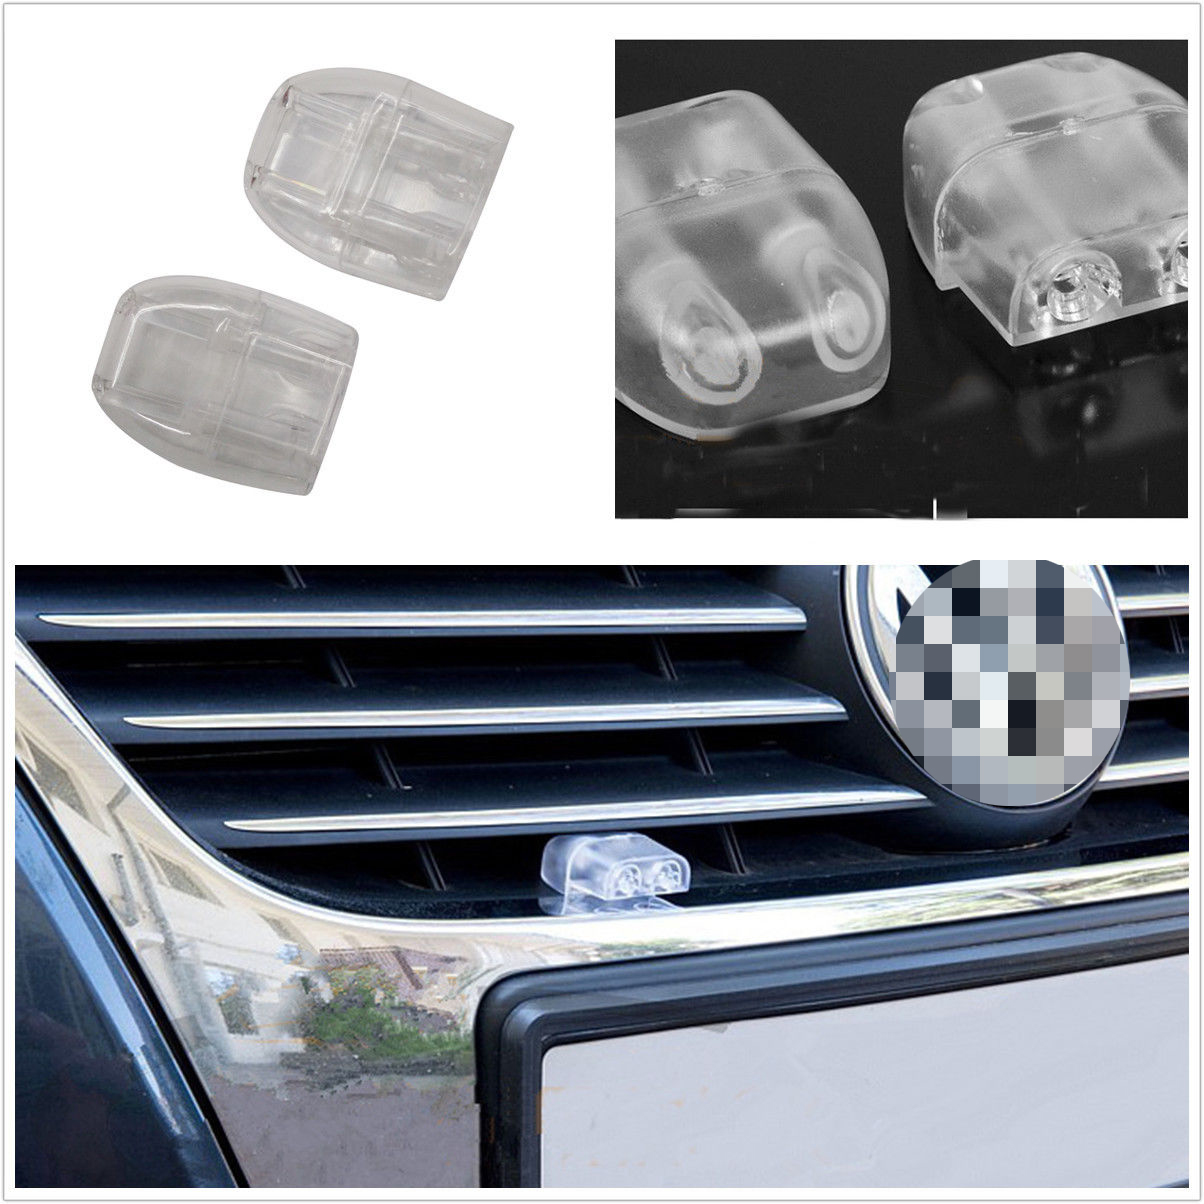 Save A Deer Whistle 2 Pack Deer Warning Whistle Device for Car The Smallest Mode with Upgraded Acrylic Double-Sided Tape